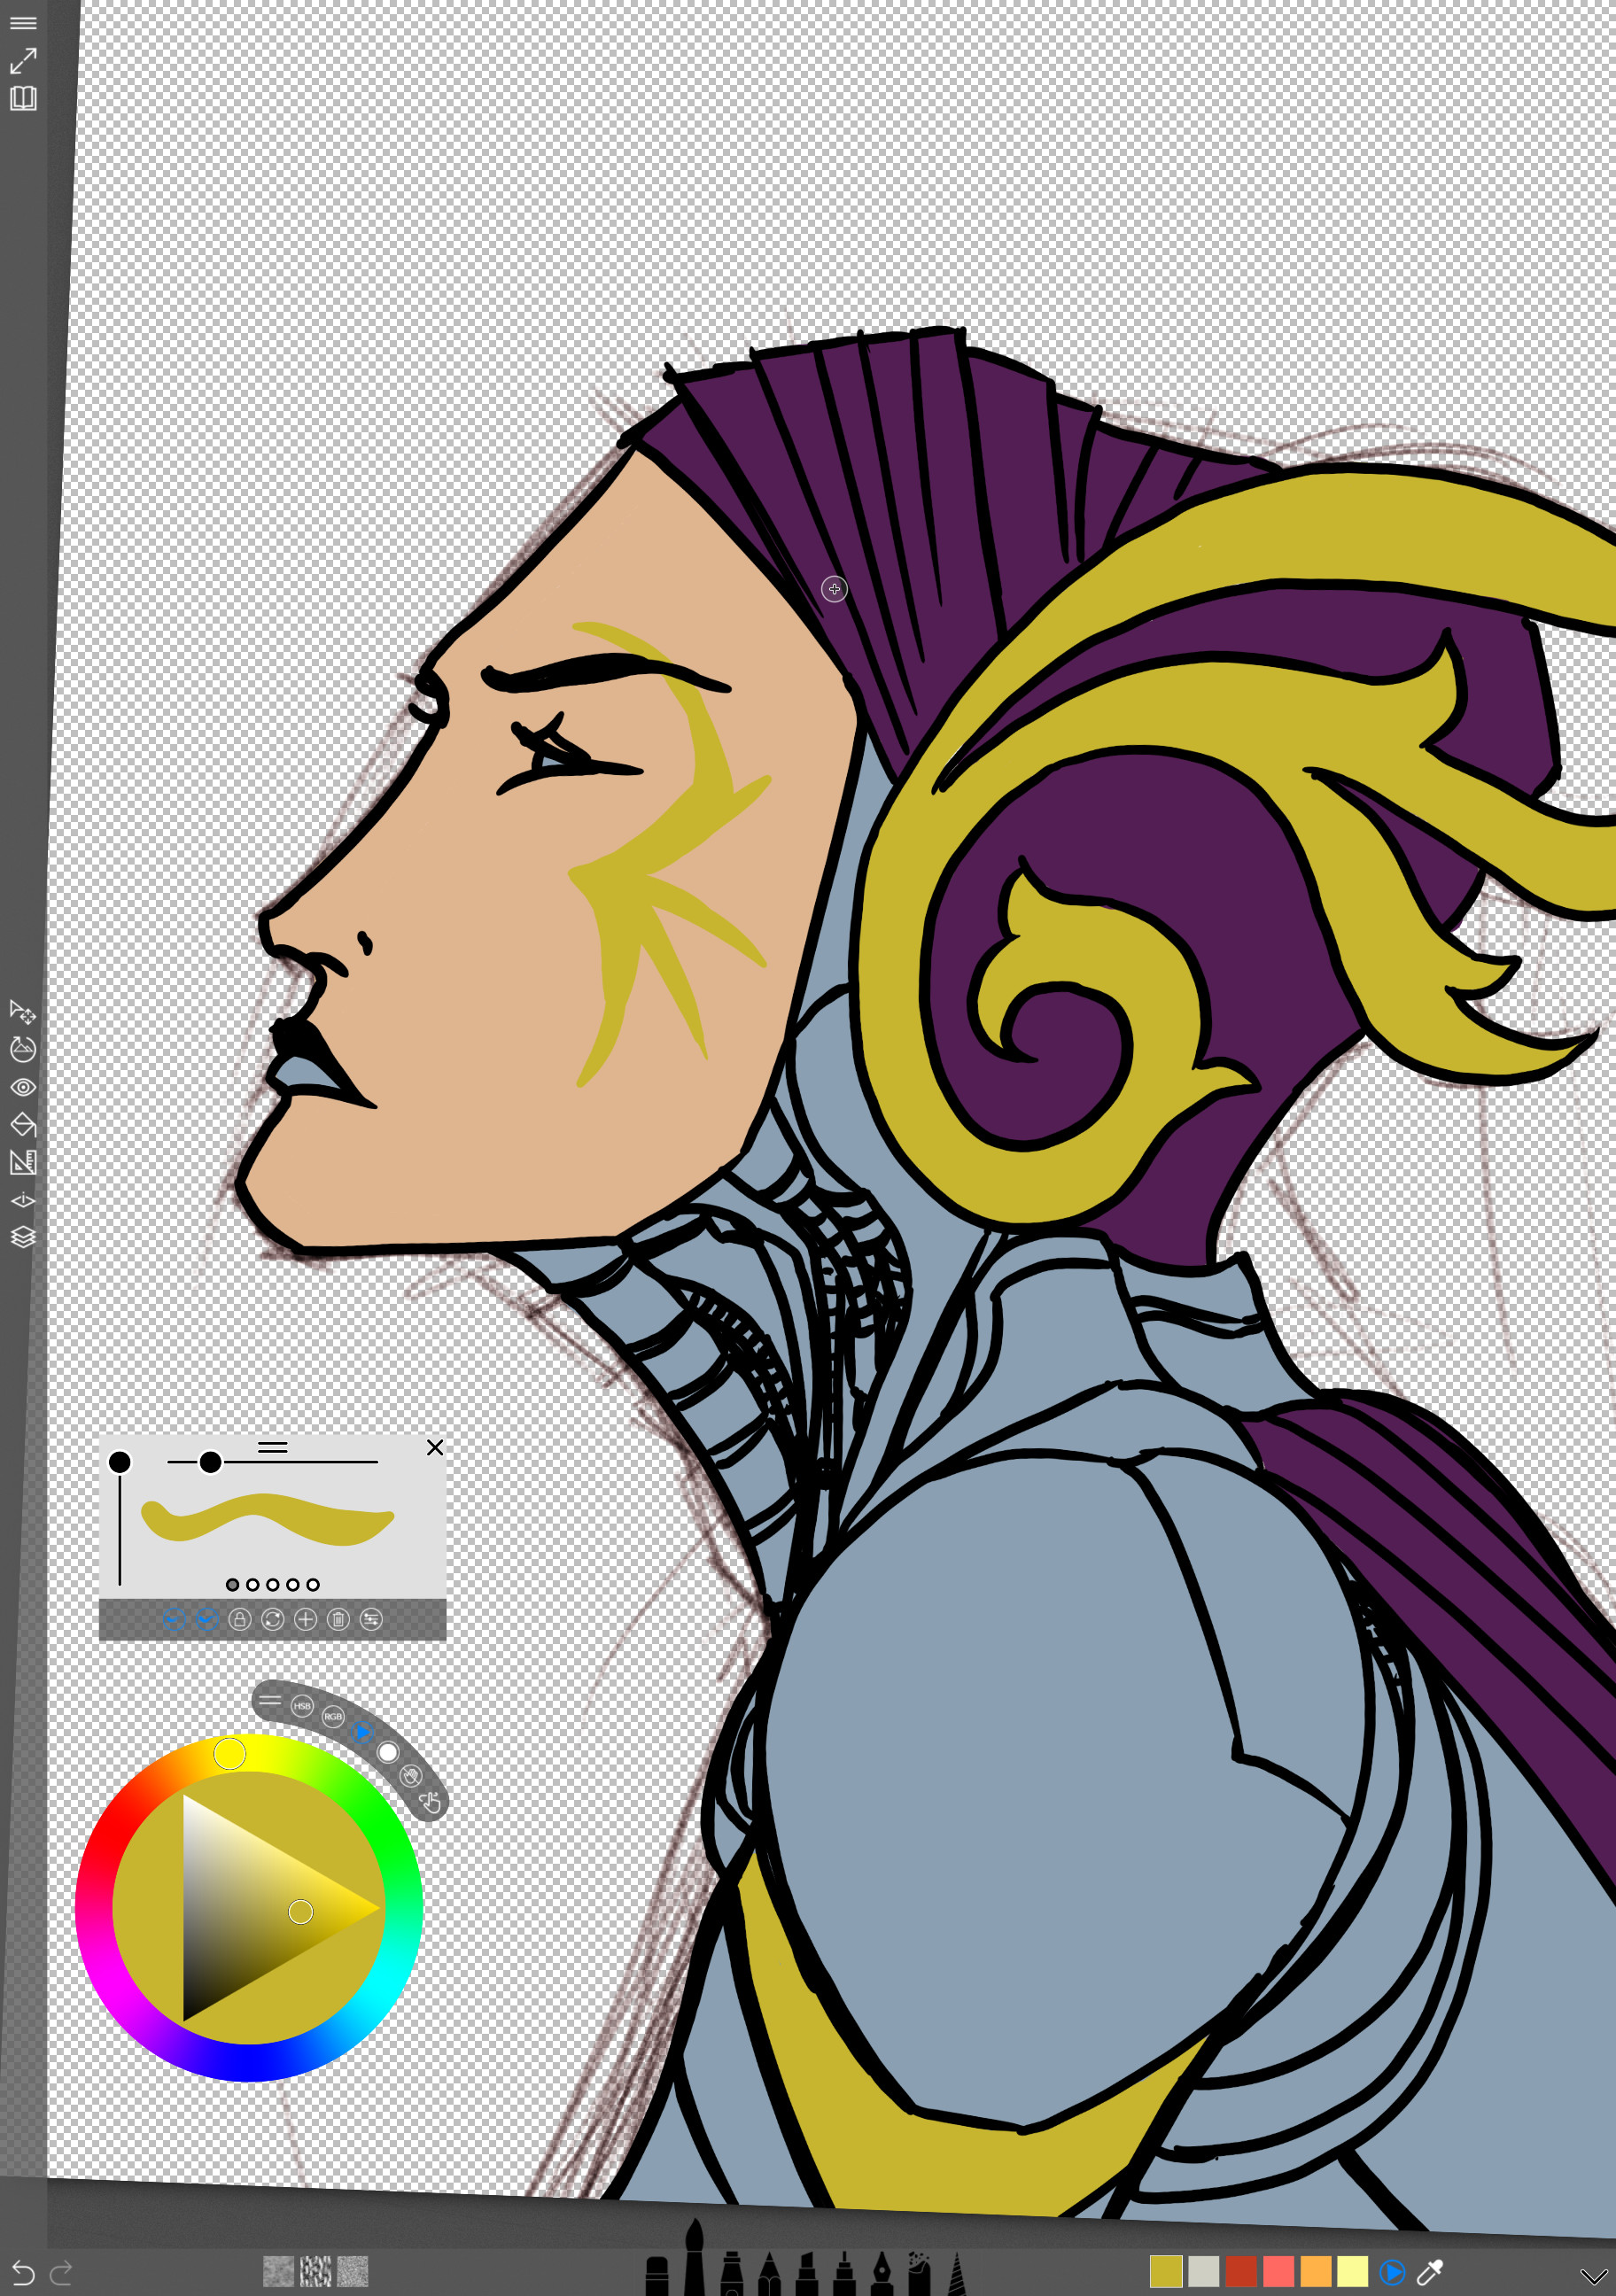 03 - Painting the base color flat